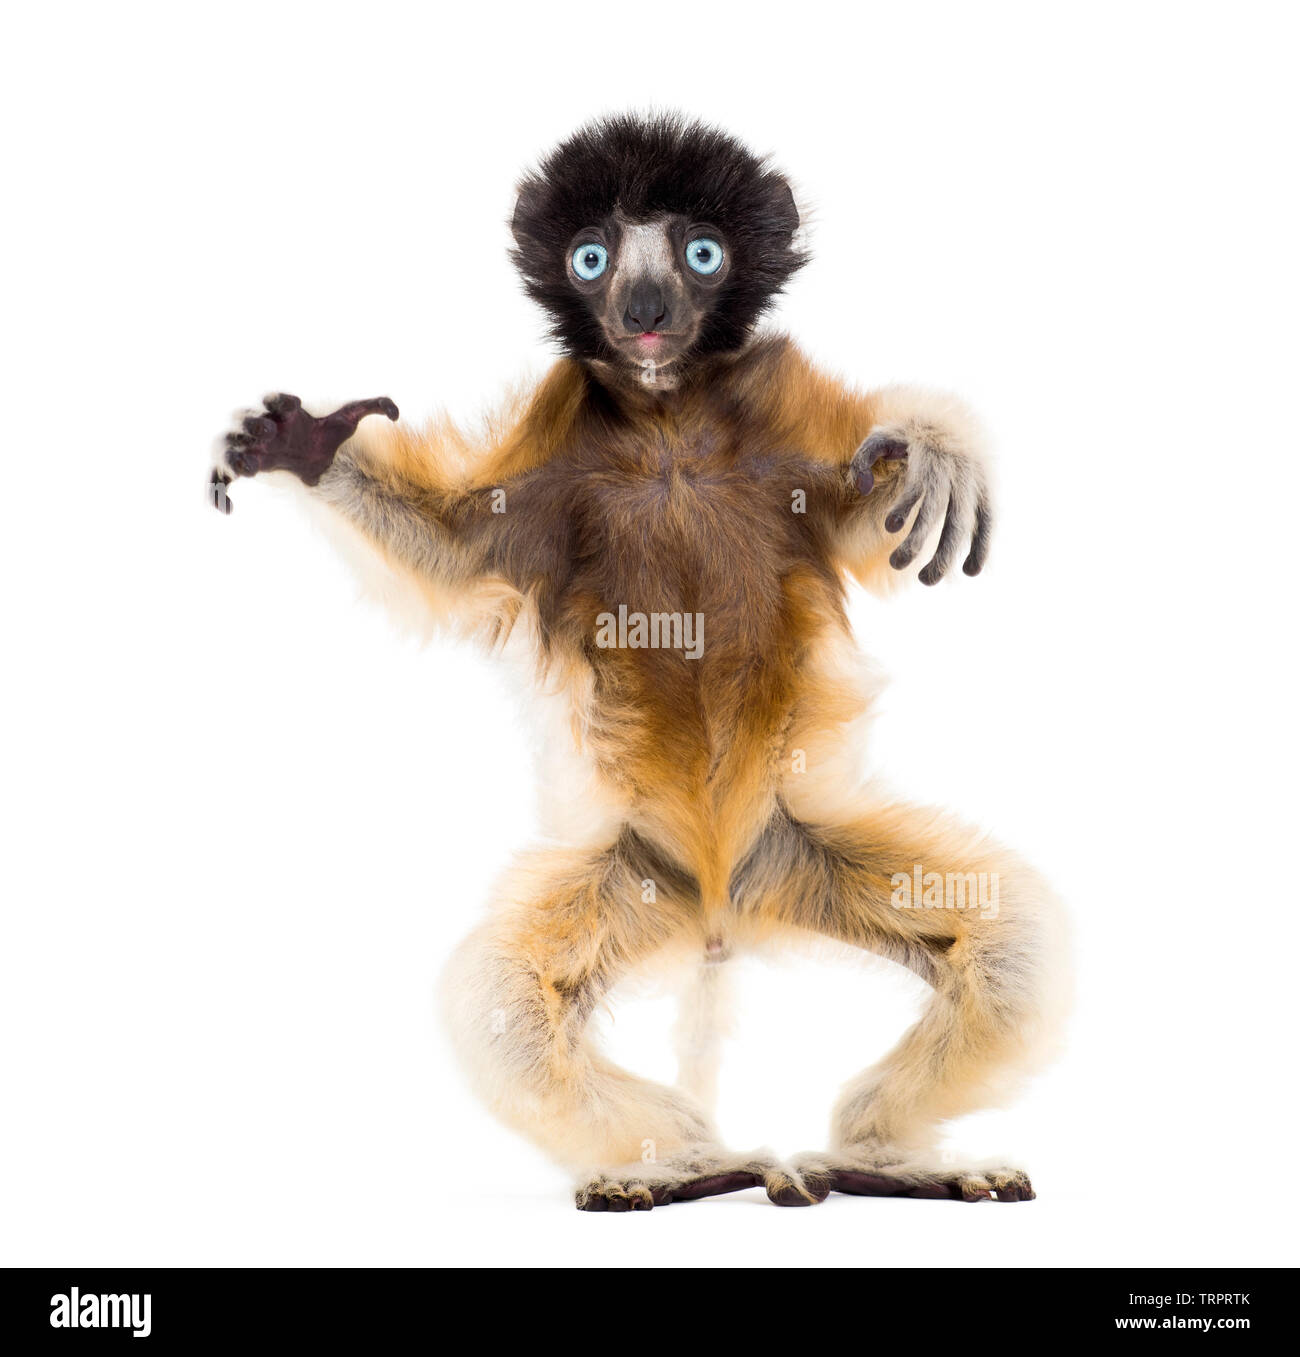 Soa, 4 months old, Crowned Sifaka standing against white background - Stock Image